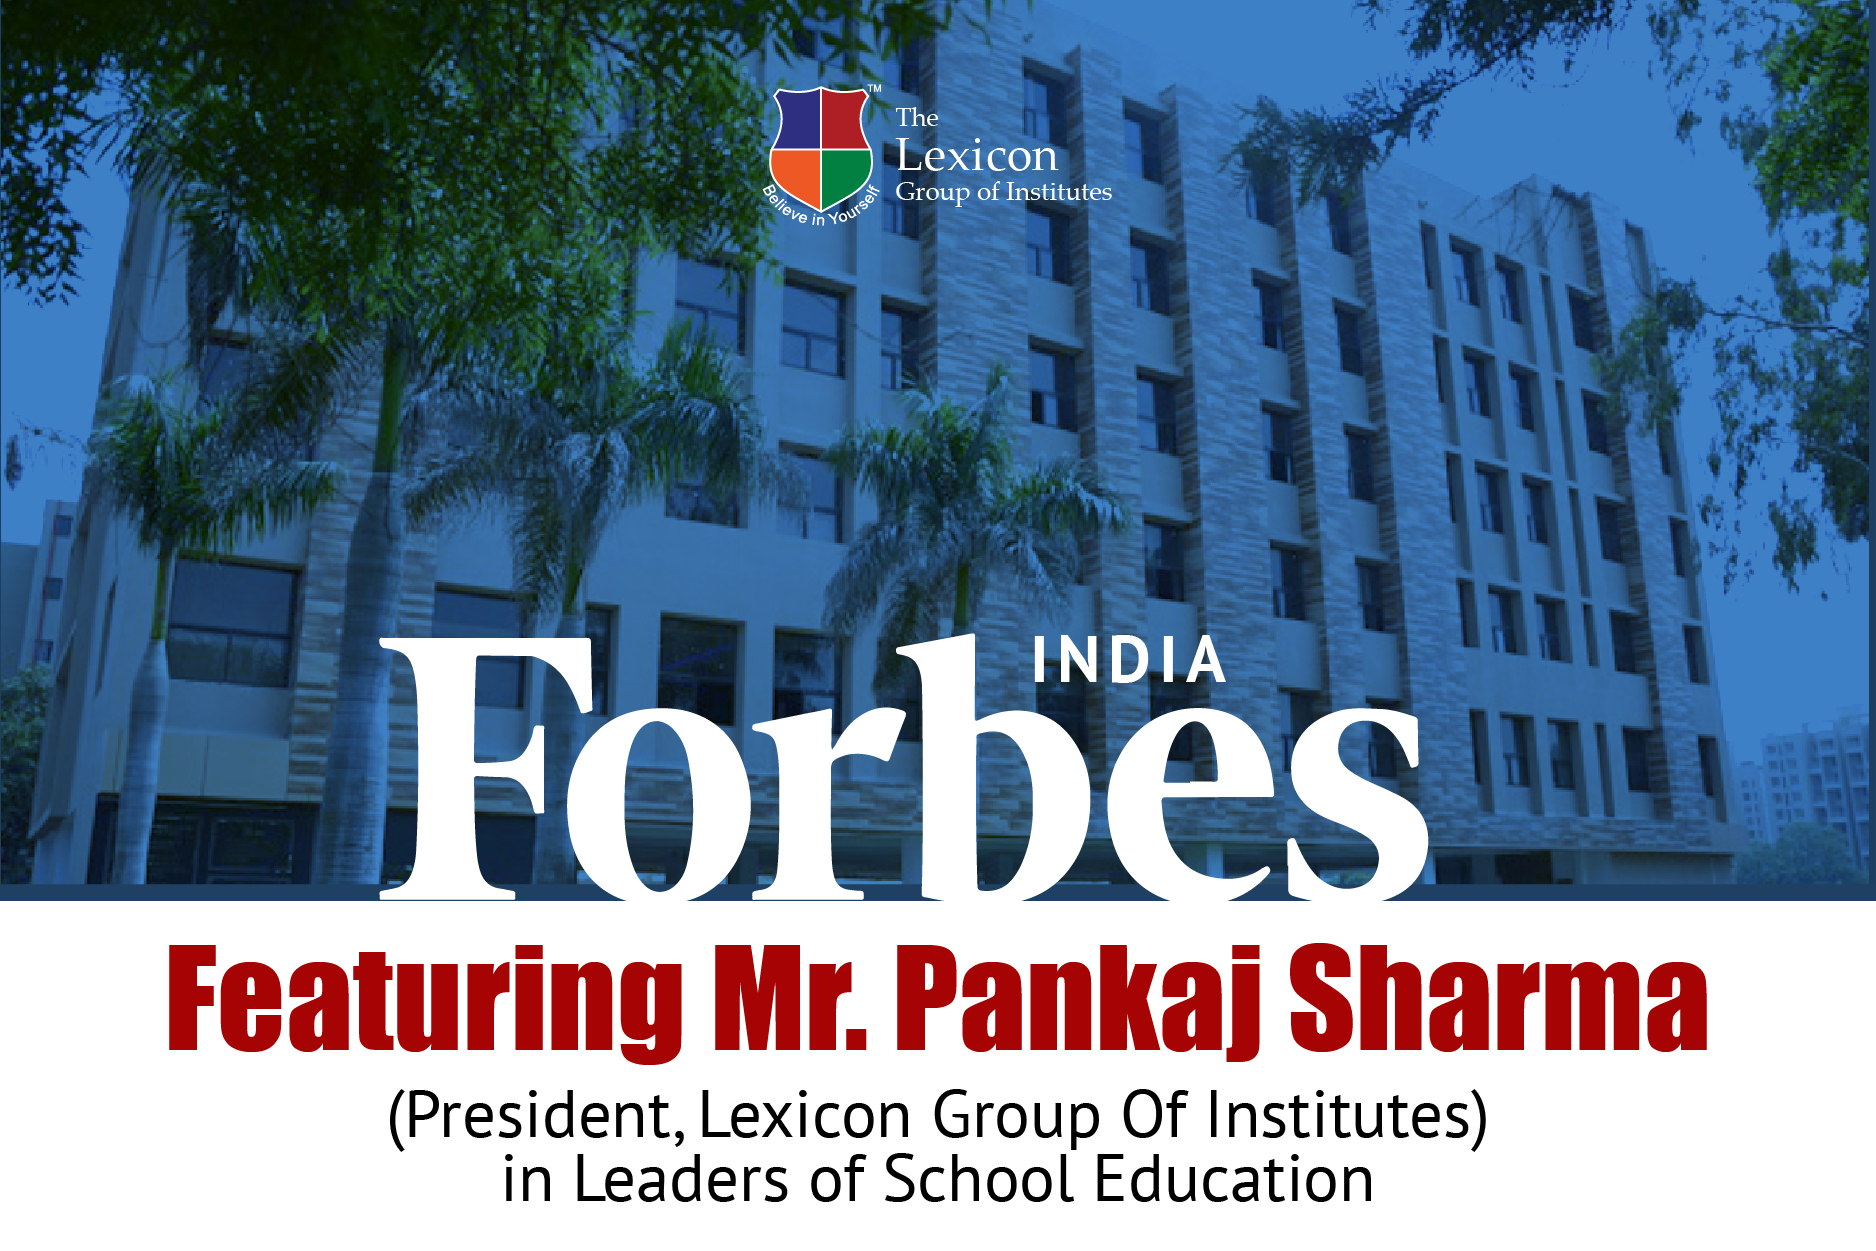 Forbes India – Featuring Mr. Pankaj Sharma (President, Lexicon Group Of Institutes) in Leaders of School Education